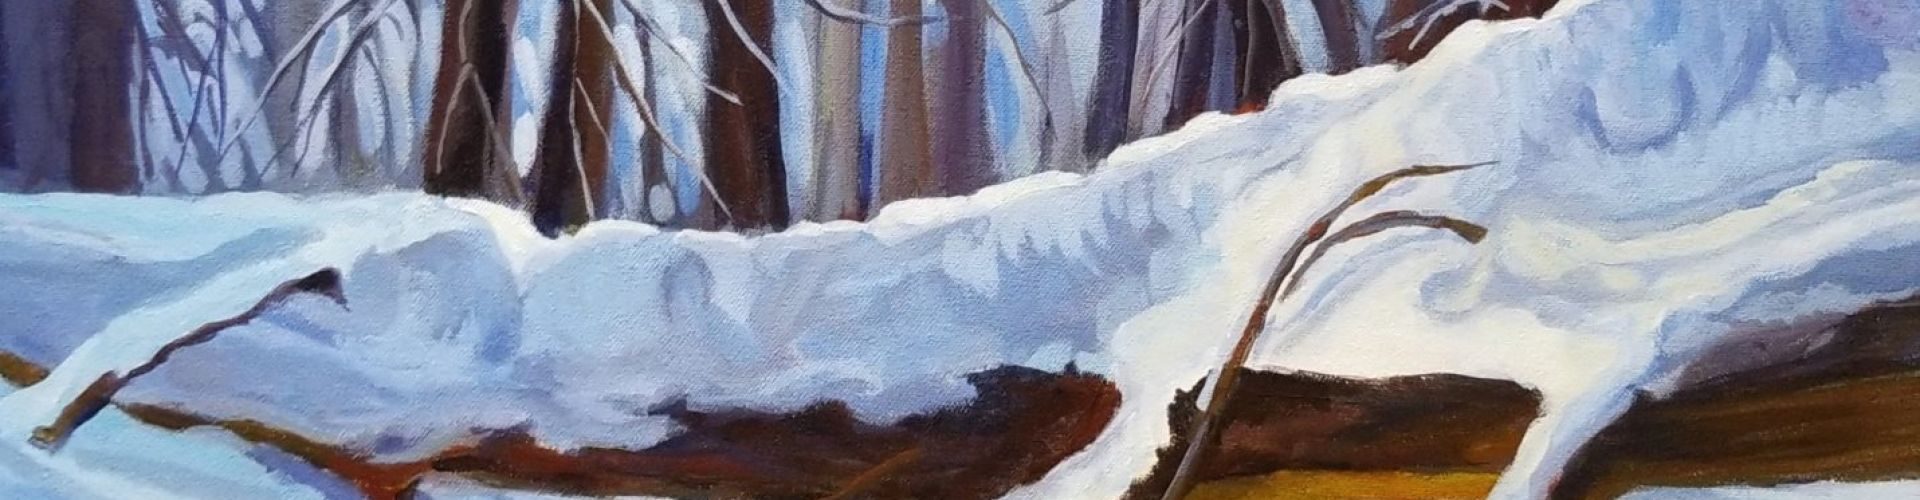 An acrylic pain of trees covered in snow.